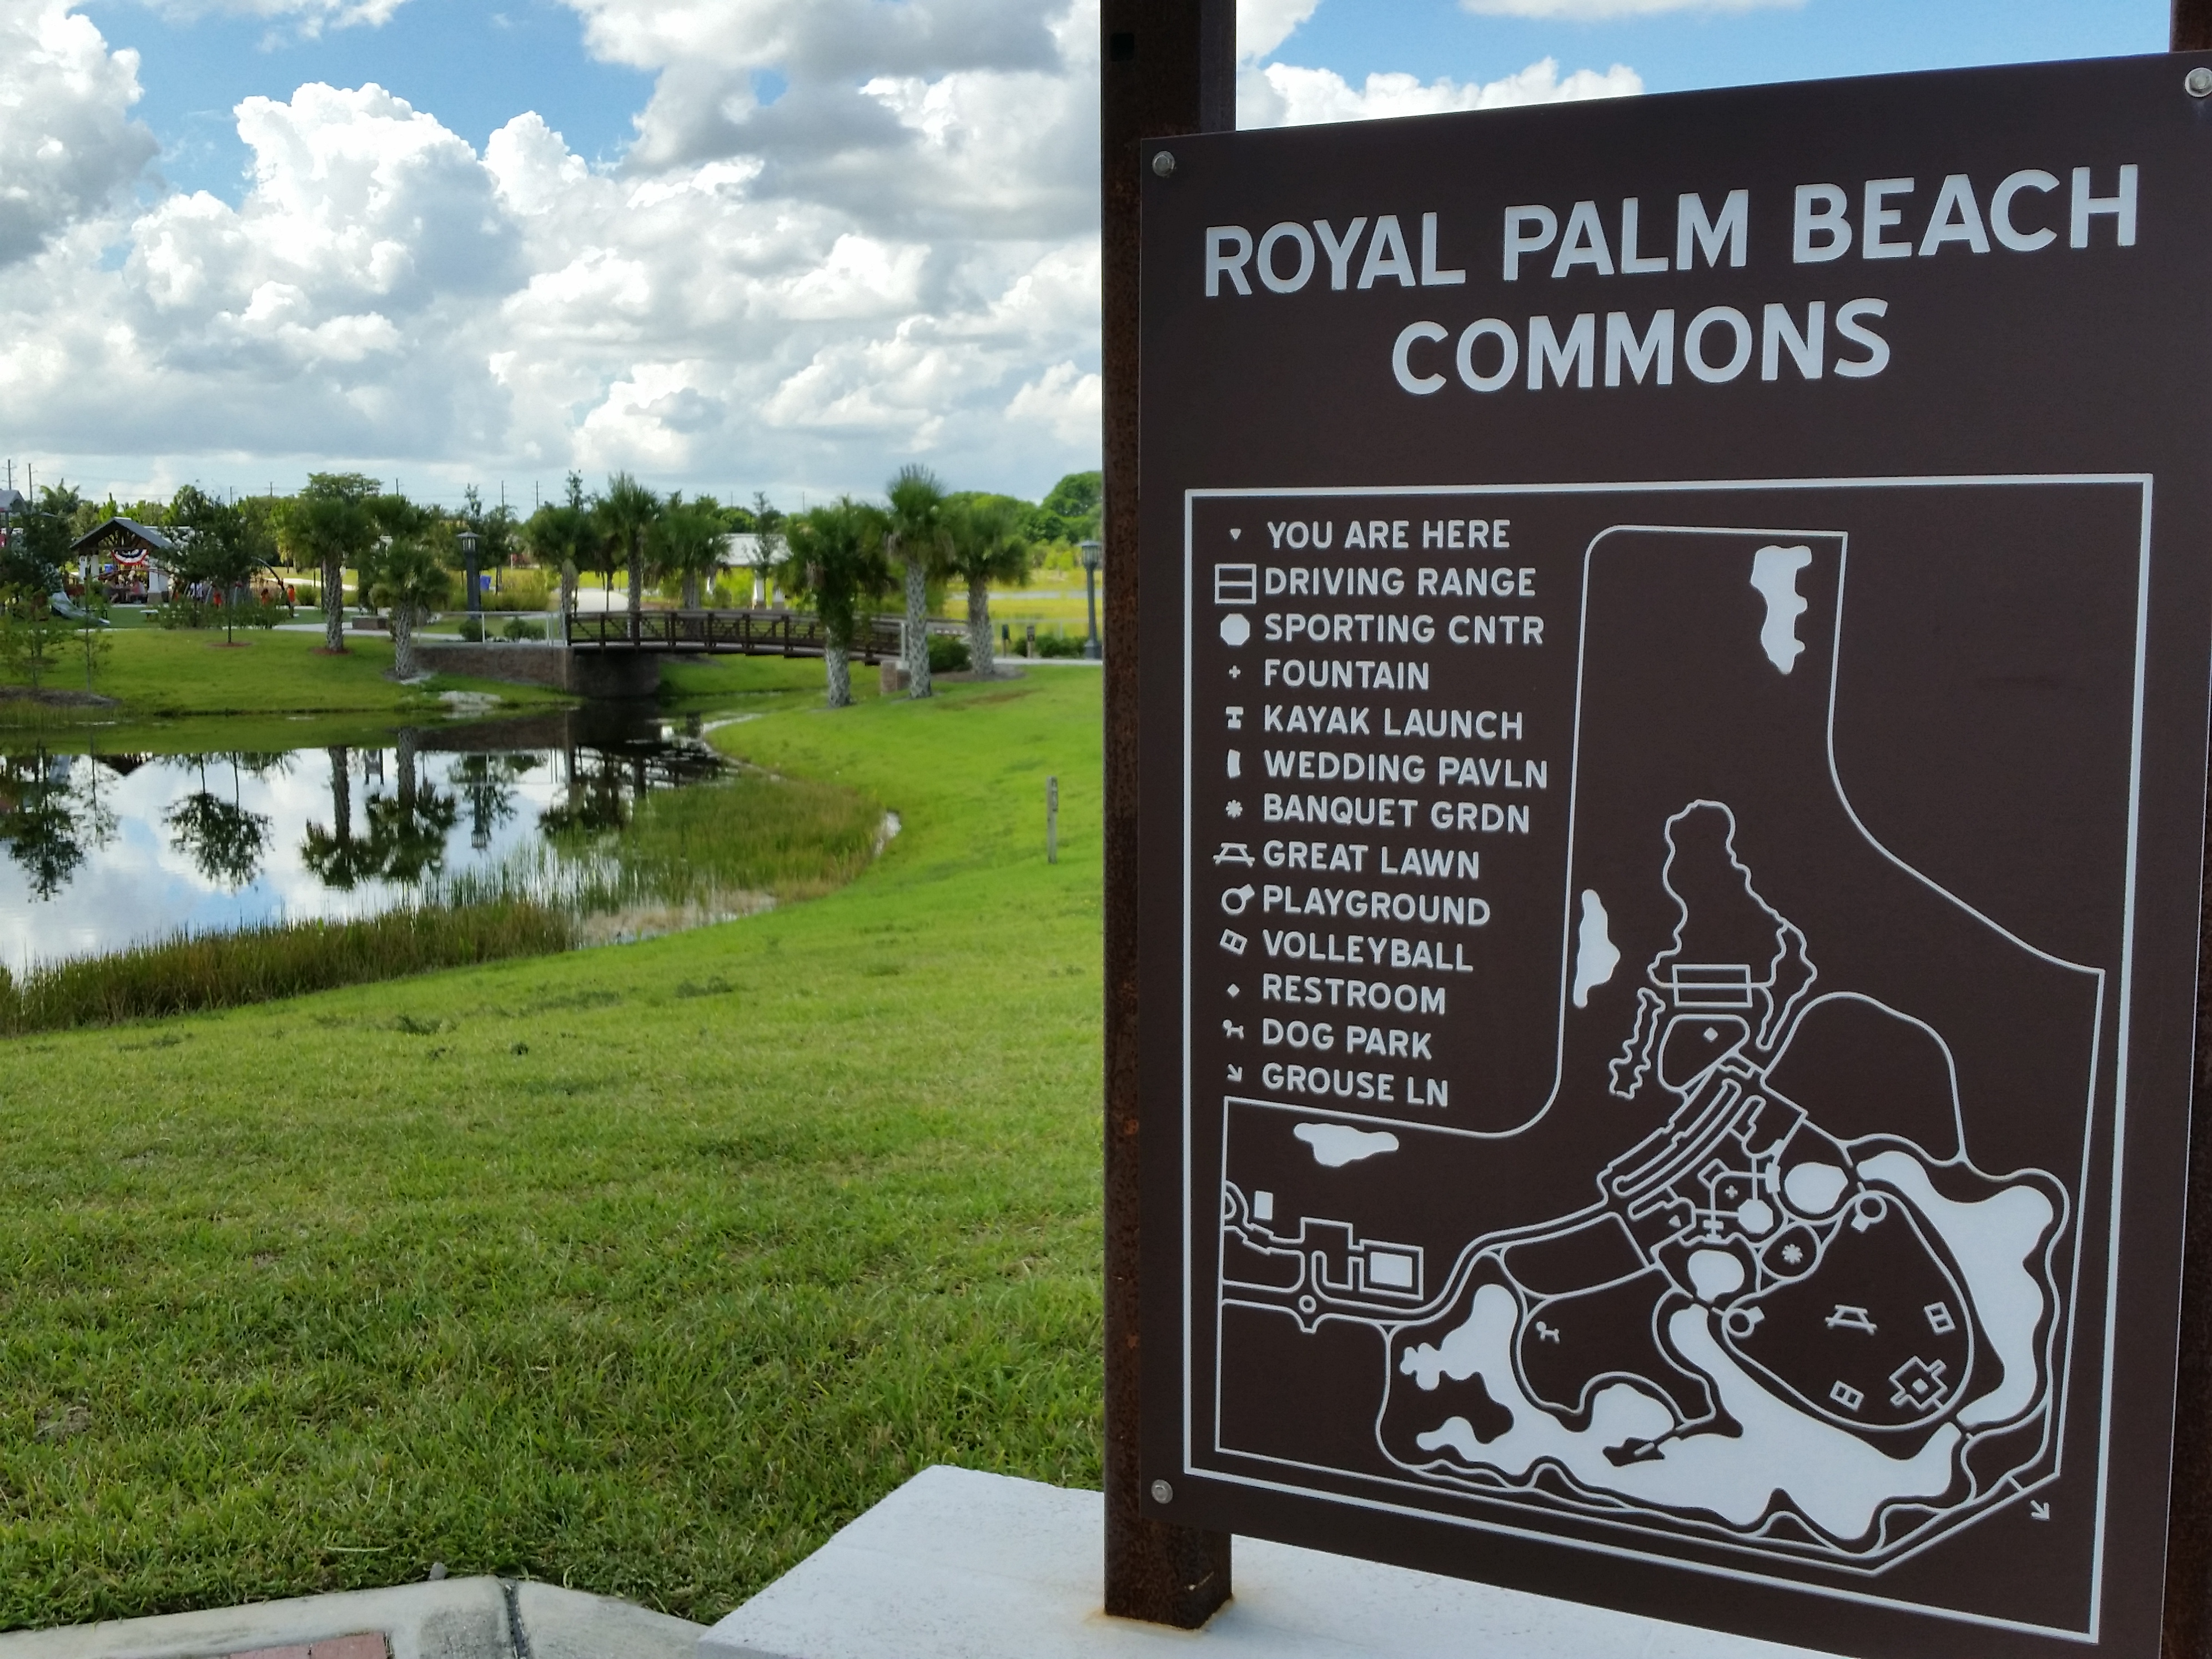 Royal Palm Beach Commons Park | South Florida Finds